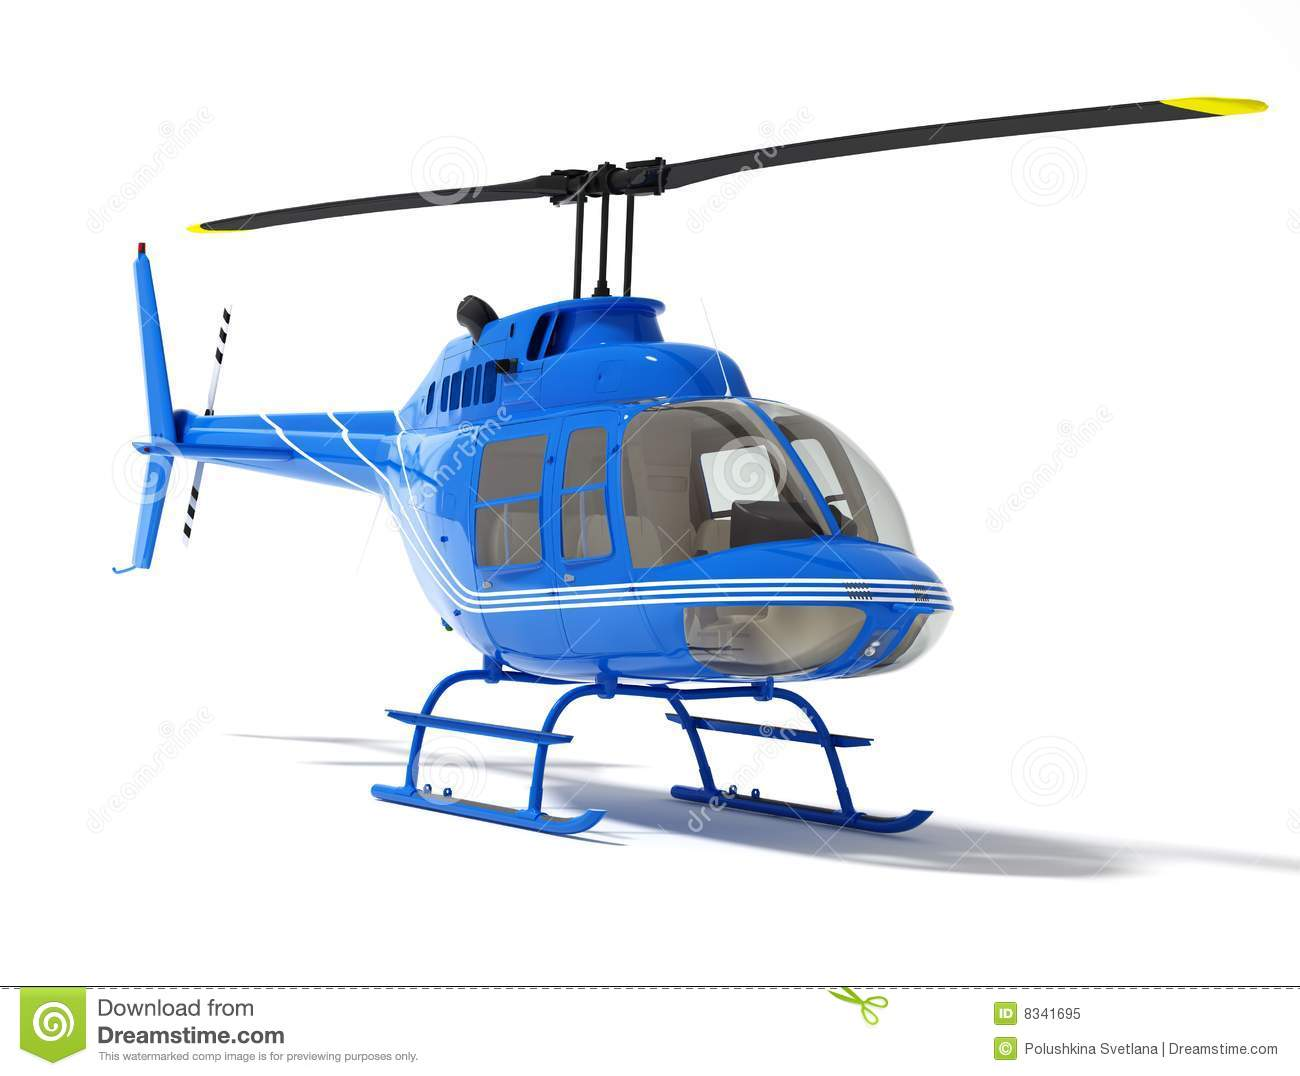 helicopter hair with Royalty Free Stock Photo Helicopter Isolated White Background Image8341695 on Sodalite Granite additionally Shes Back Toni Tones Releases Sexy New Photos Announces New Single Hey Boy besides Renae Ayris Wears Colourful Low Cut Dress Worn Niki Phillips Nadia Bartel Red Carpet Myer Fashion Show likewise Kate Hudson Gives Matt Bellamy Kiss Boards Helicopter Rest Muse Ahead Gig Brazil besides Royalty Free Stock Photo Helicopter Isolated White Background Image8341695.